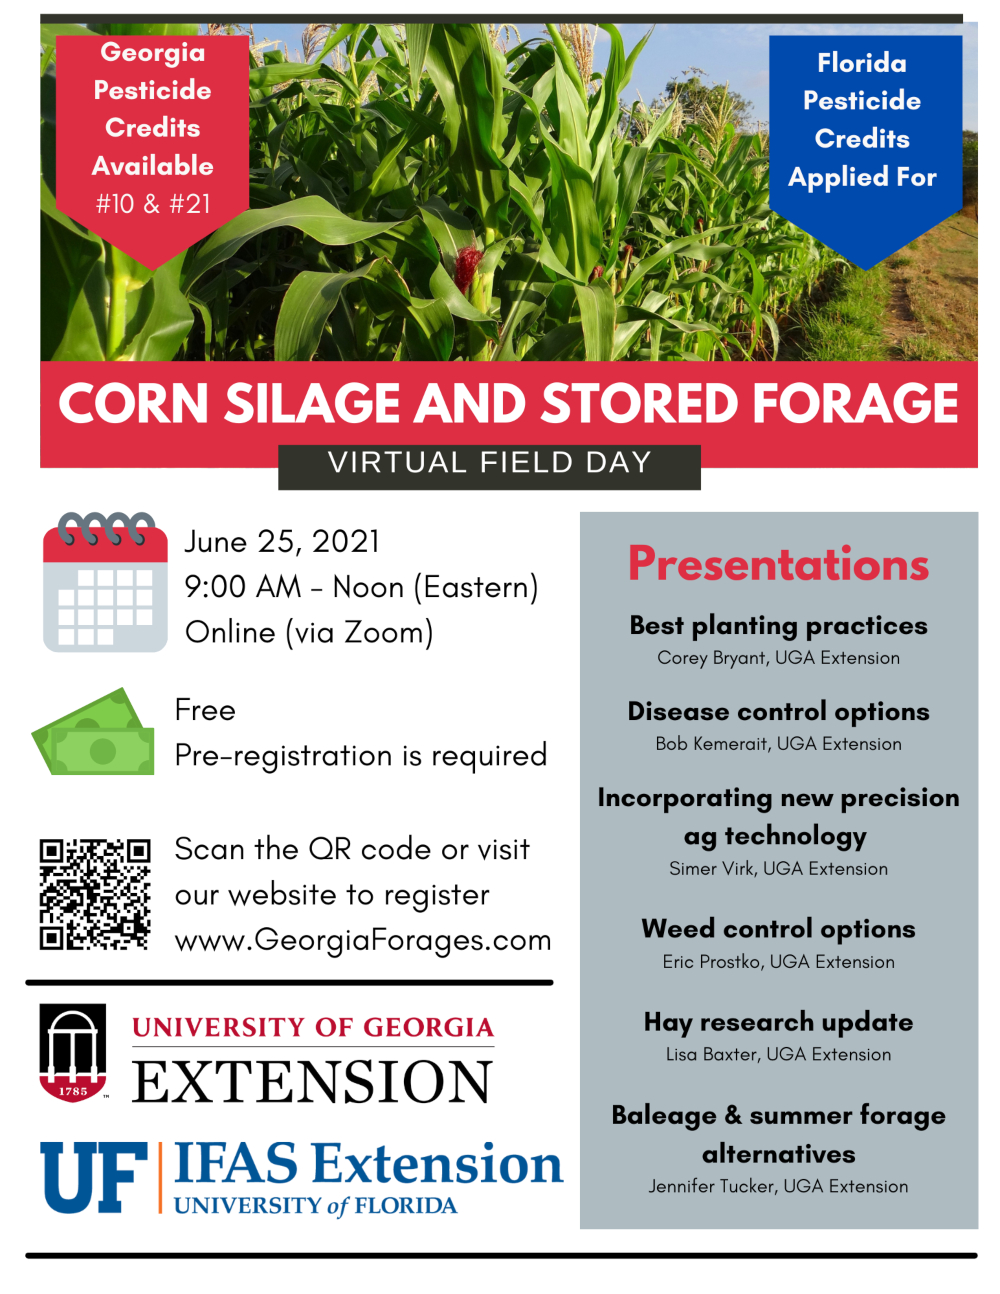 Virtual Corn Silage and Stored Forage Field Day